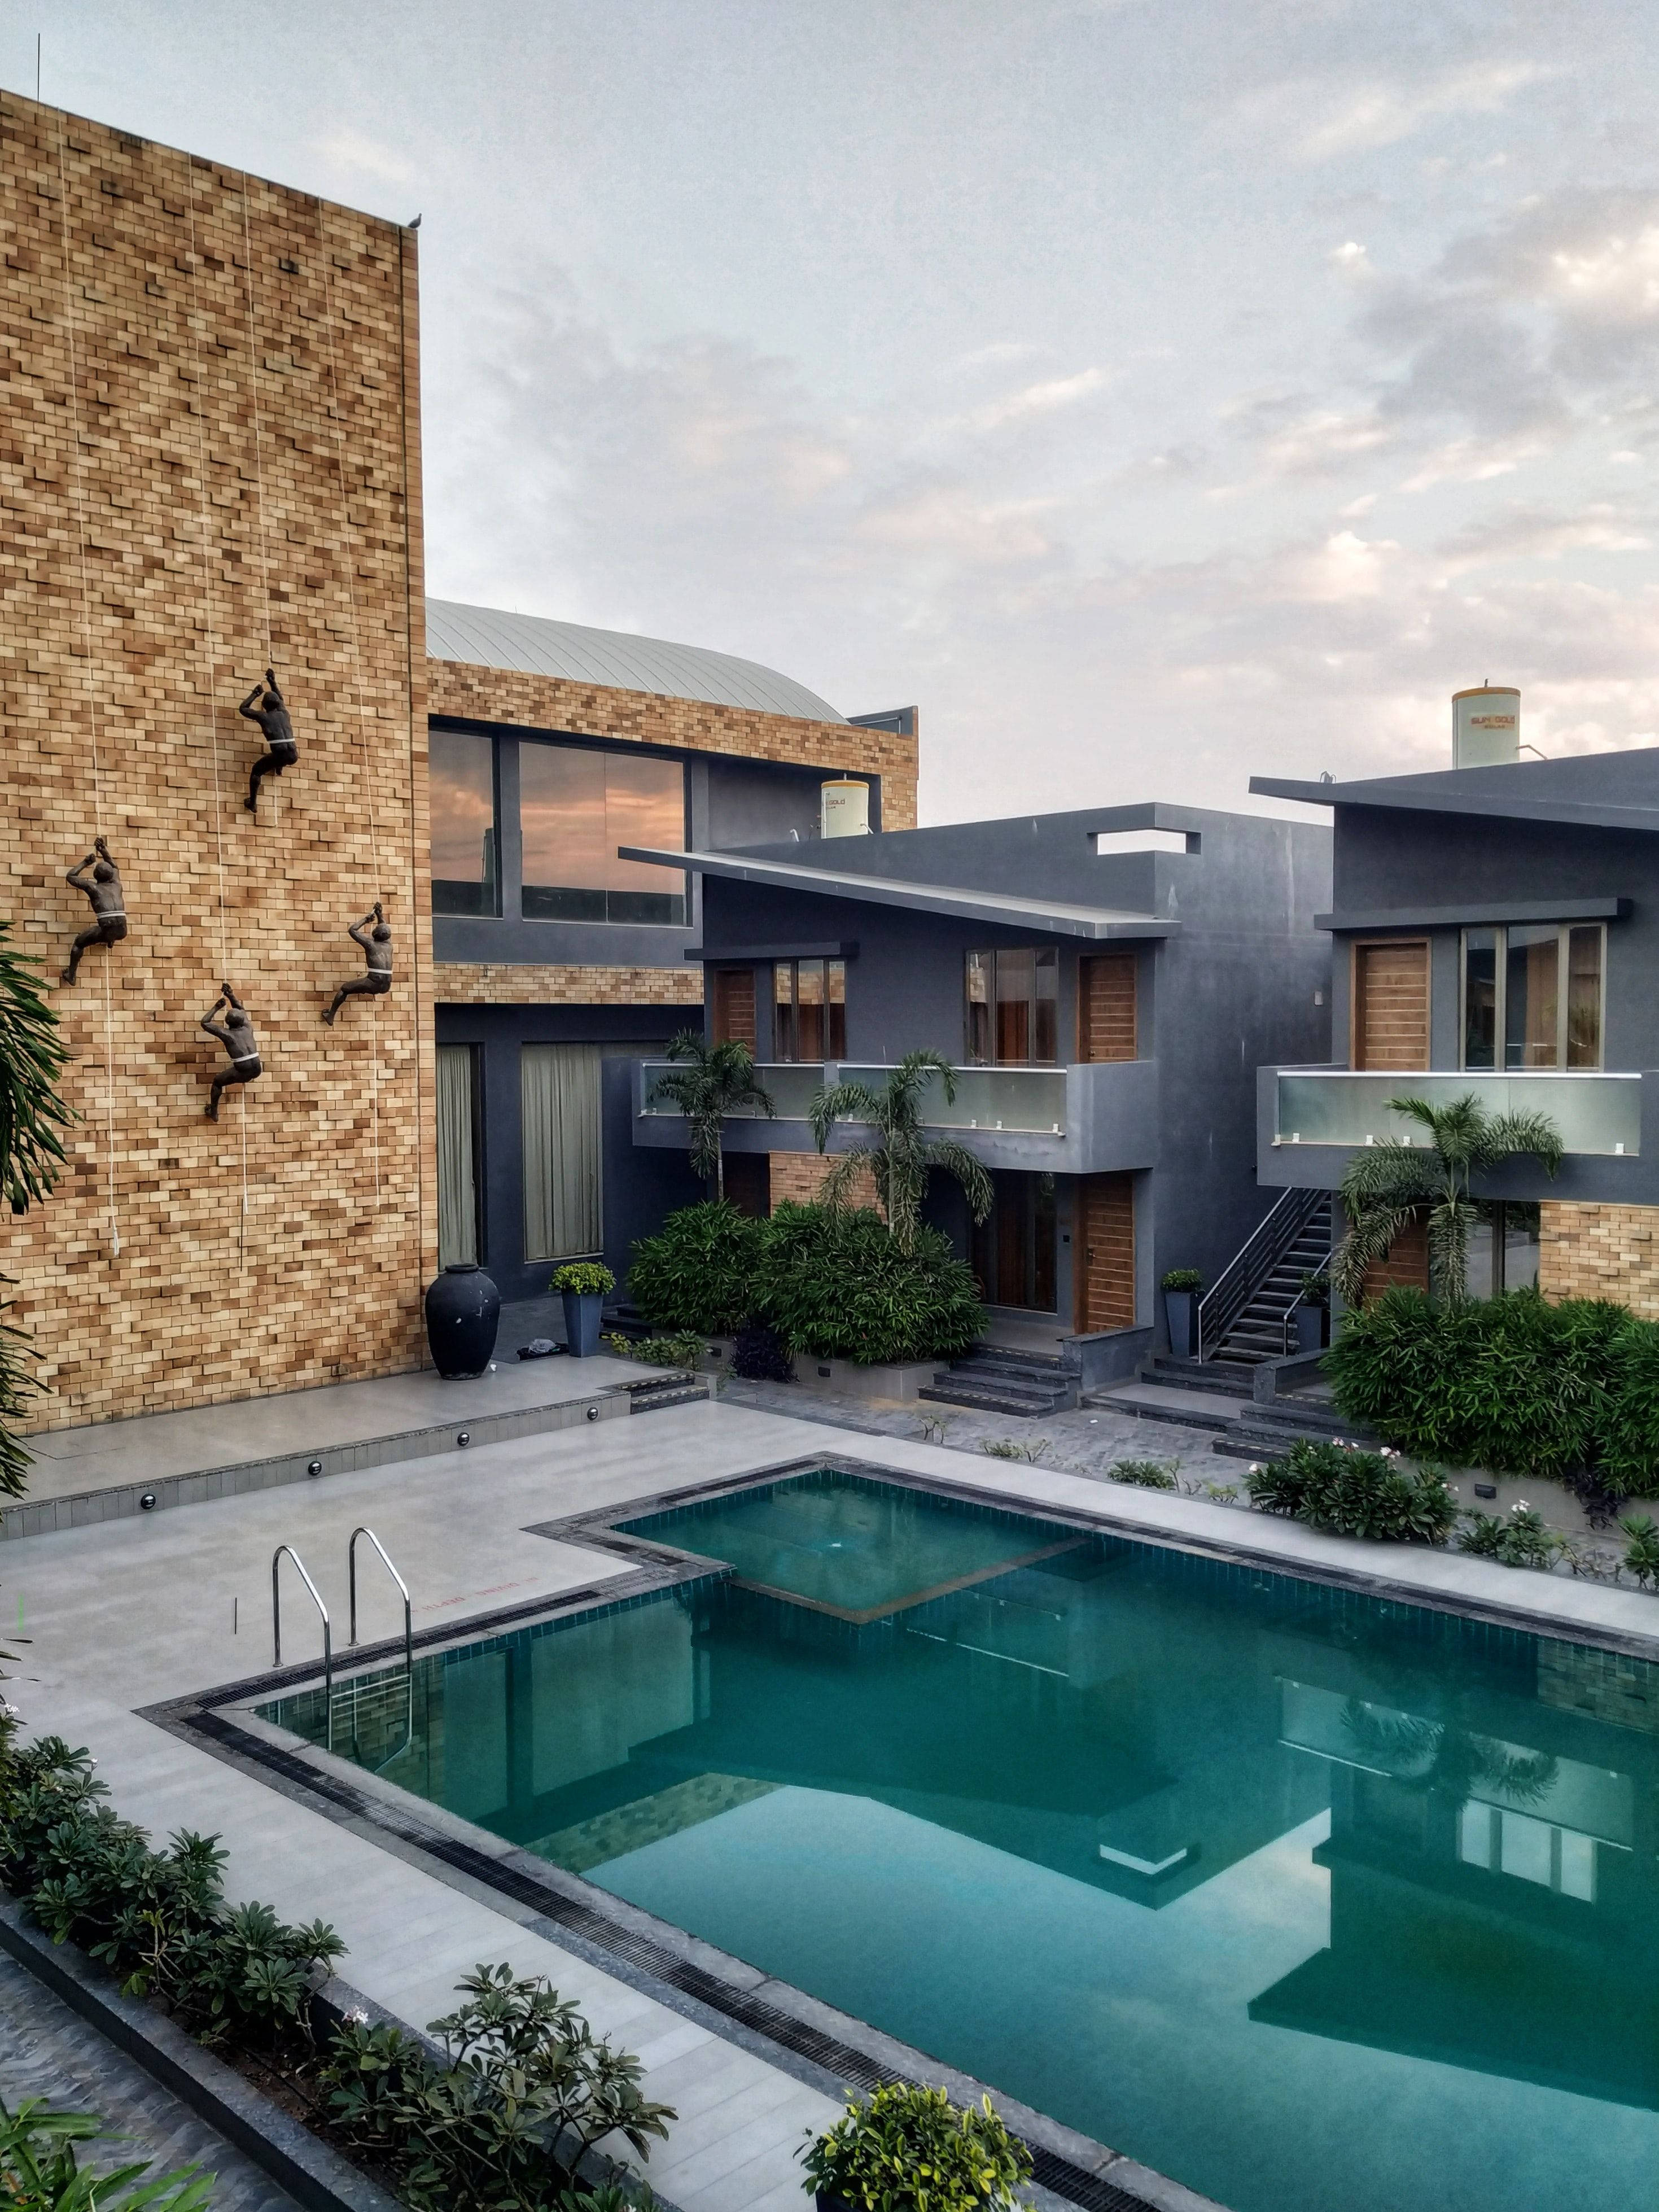 Houses With Pools For Sale In Los Angeles Ca 1 238 Homes With Swimming Pools In Los Angeles Ca For Sale Zerodown